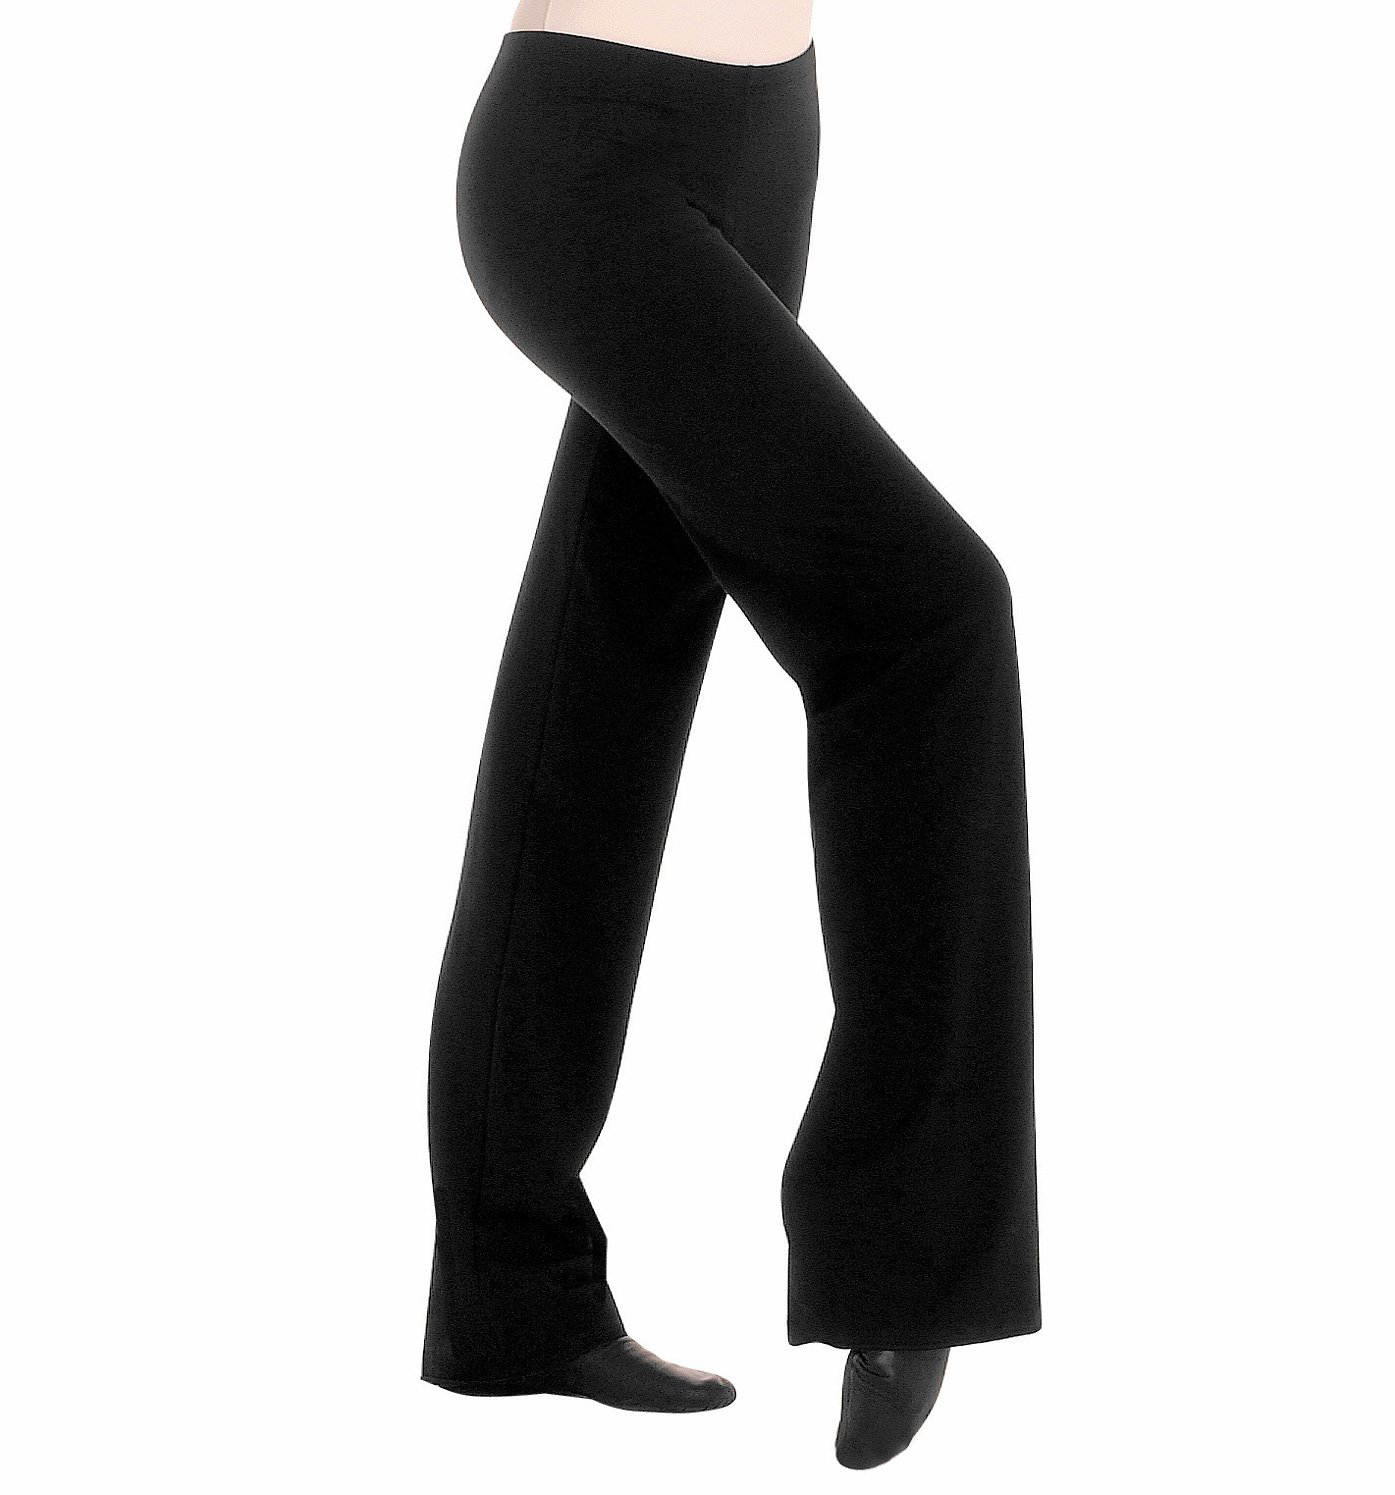 Adult Jazz Pant,0691BLKL,Black,Large by Body Wrappers